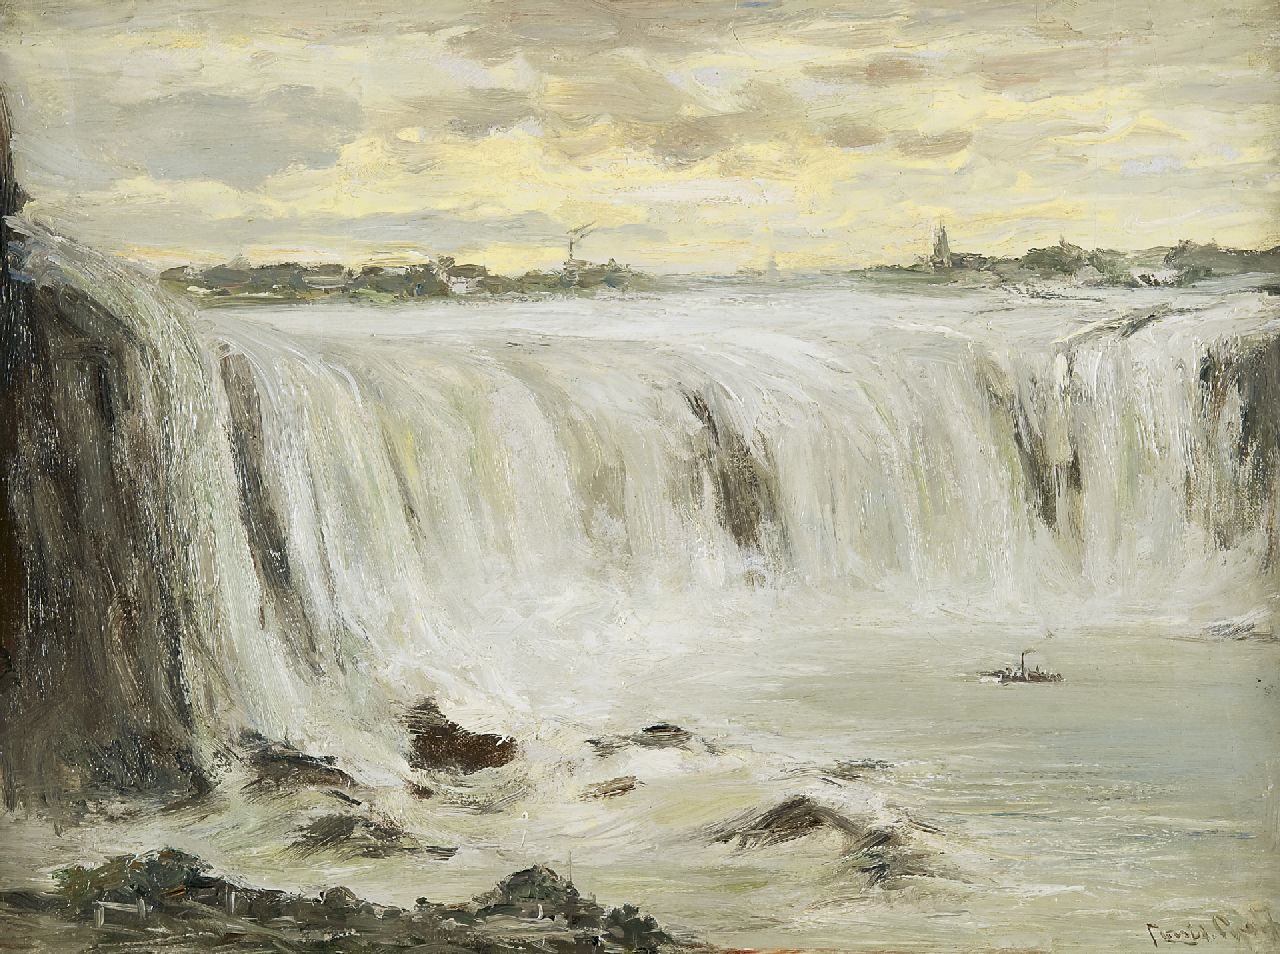 Apol L.F.H.  | Lodewijk Franciscus Hendrik 'Louis' Apol, the Niagara falls, oil on canvas 30.3 x 40.5 cm, signed l.r.